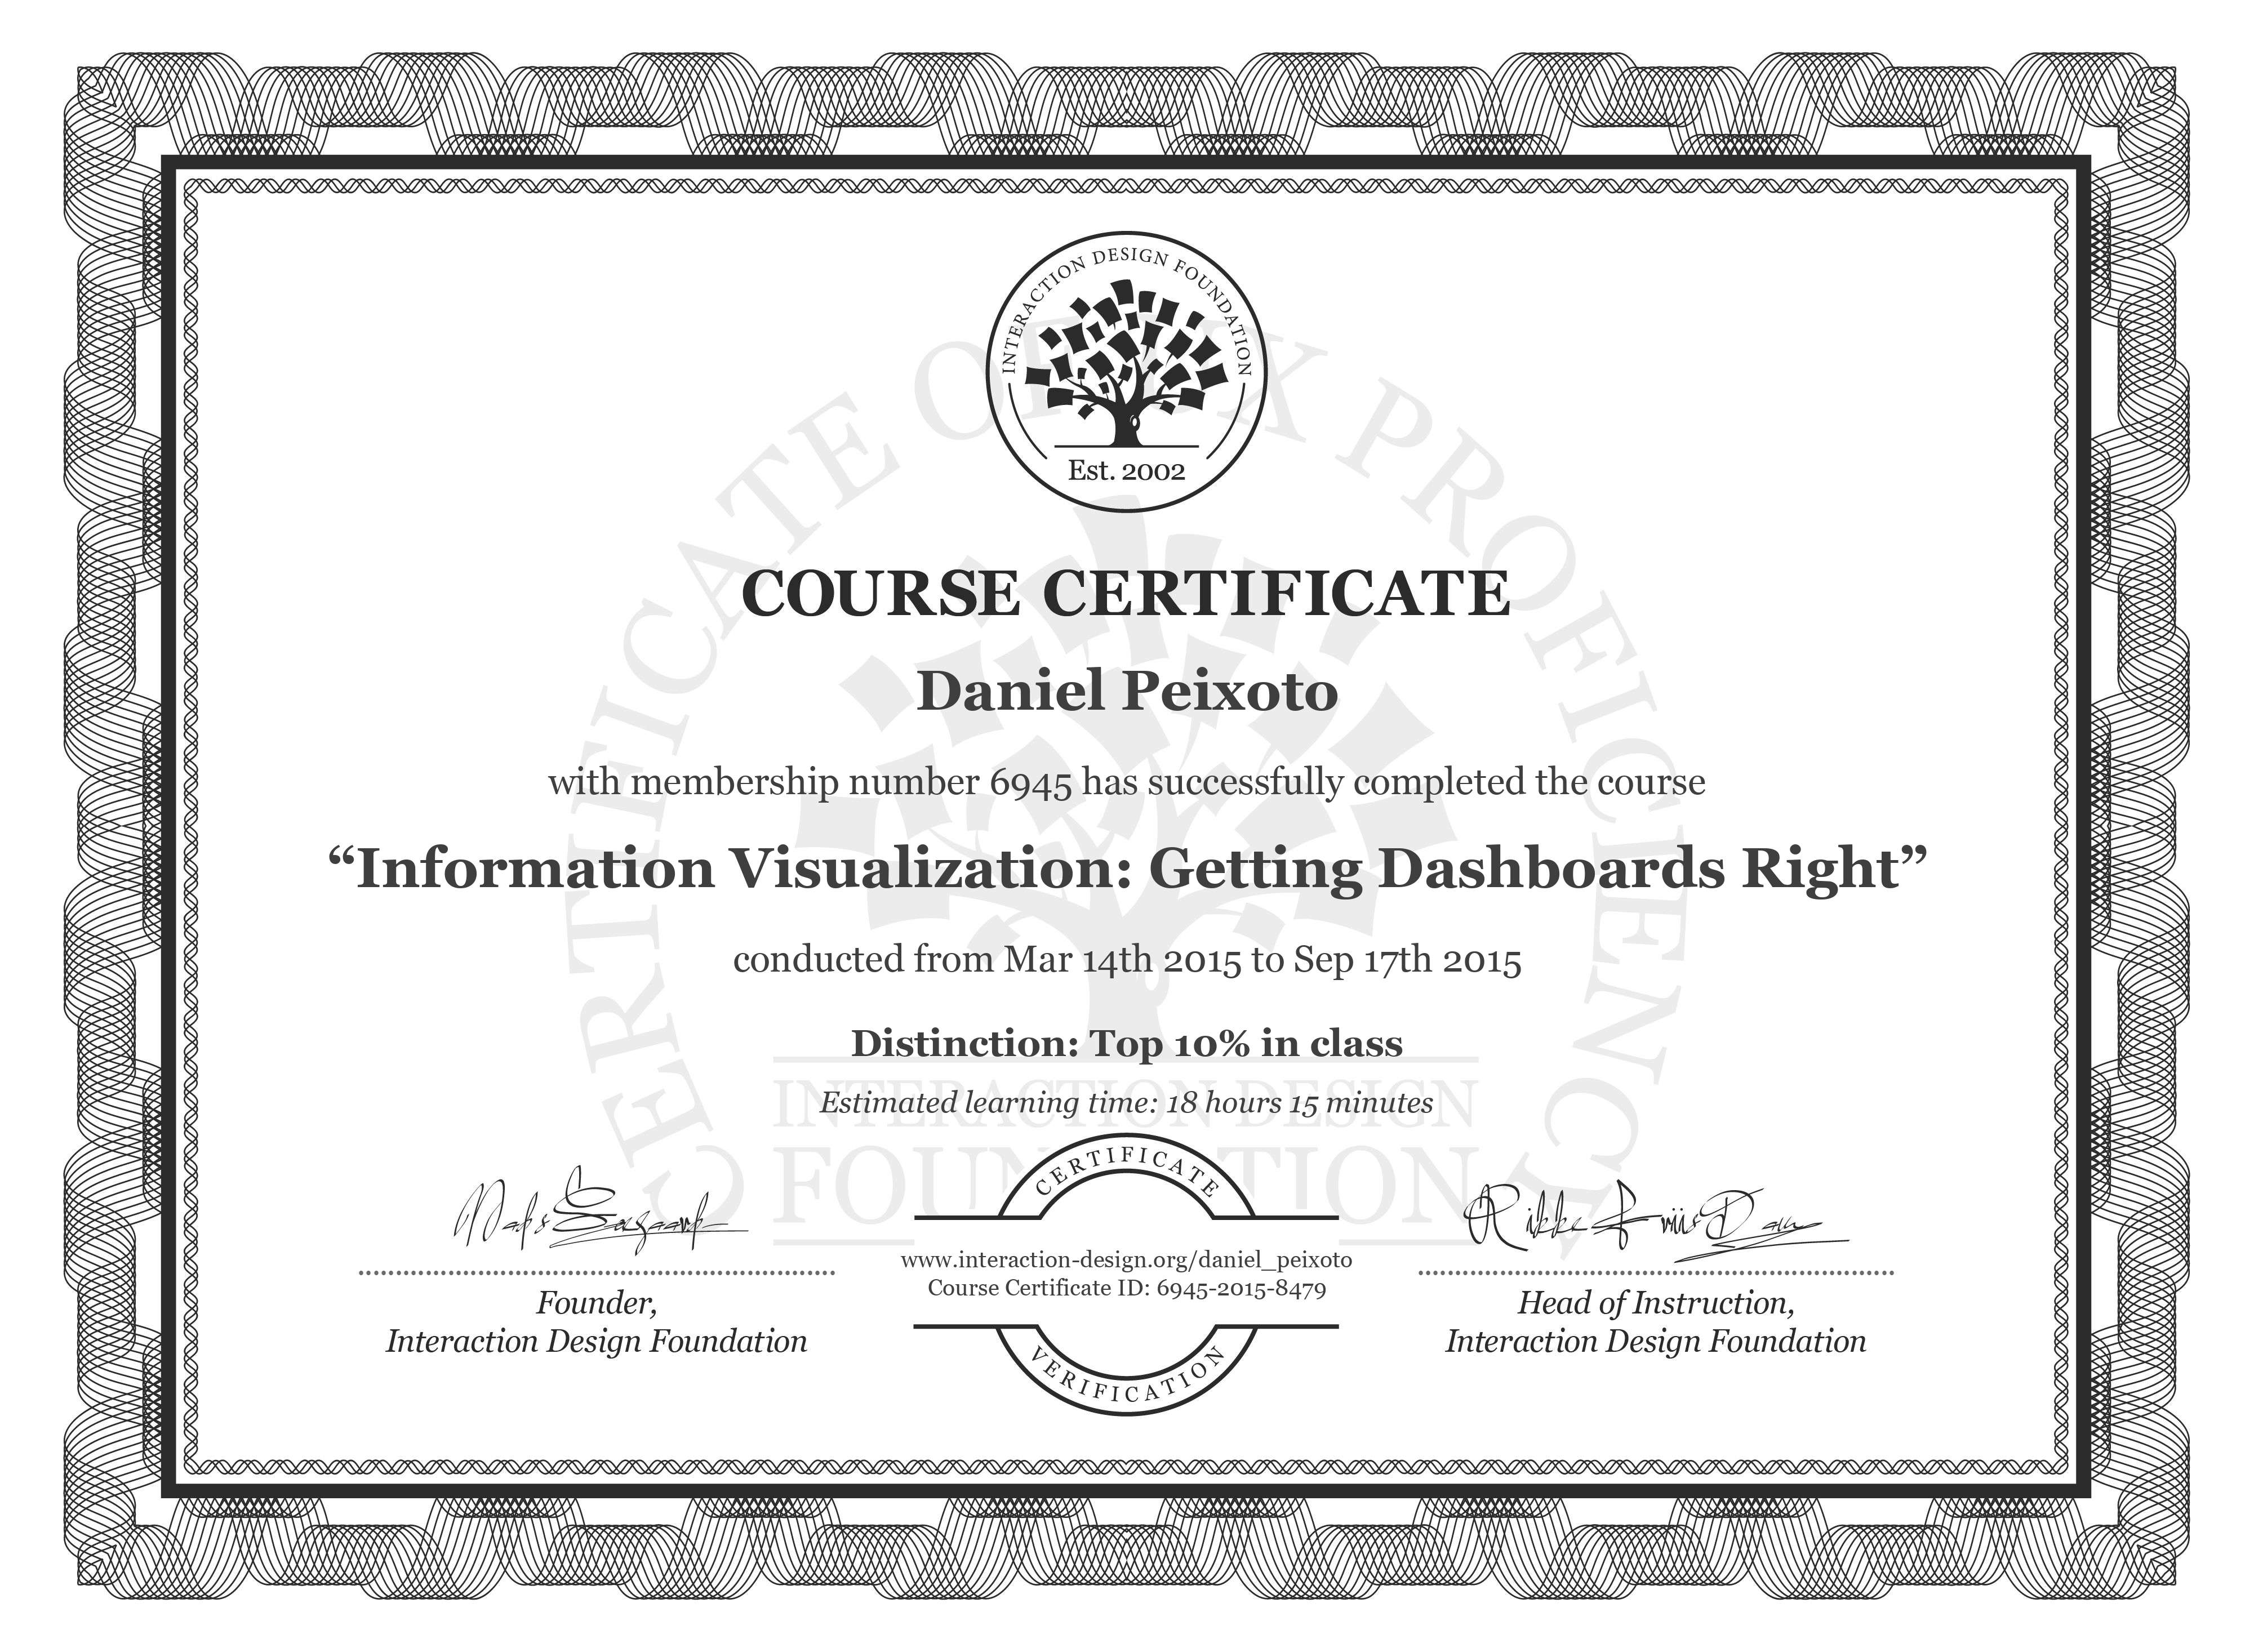 Daniel Peixoto: Course Certificate - Information Visualization: Getting Dashboards Right